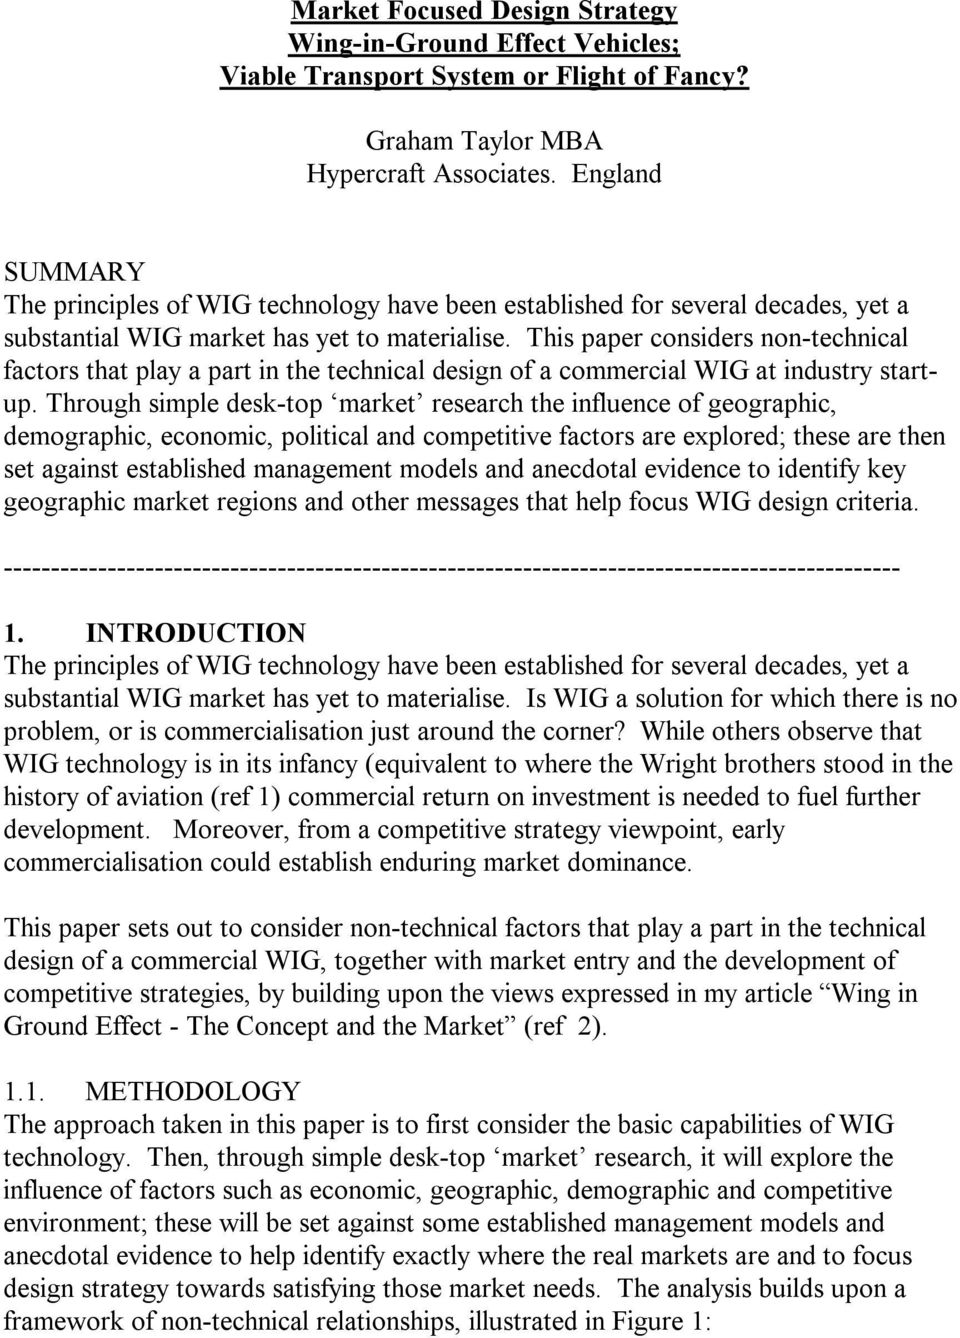 This paper considers non-technical factors that play a part in the technical design of a commercial WIG at industry startup.